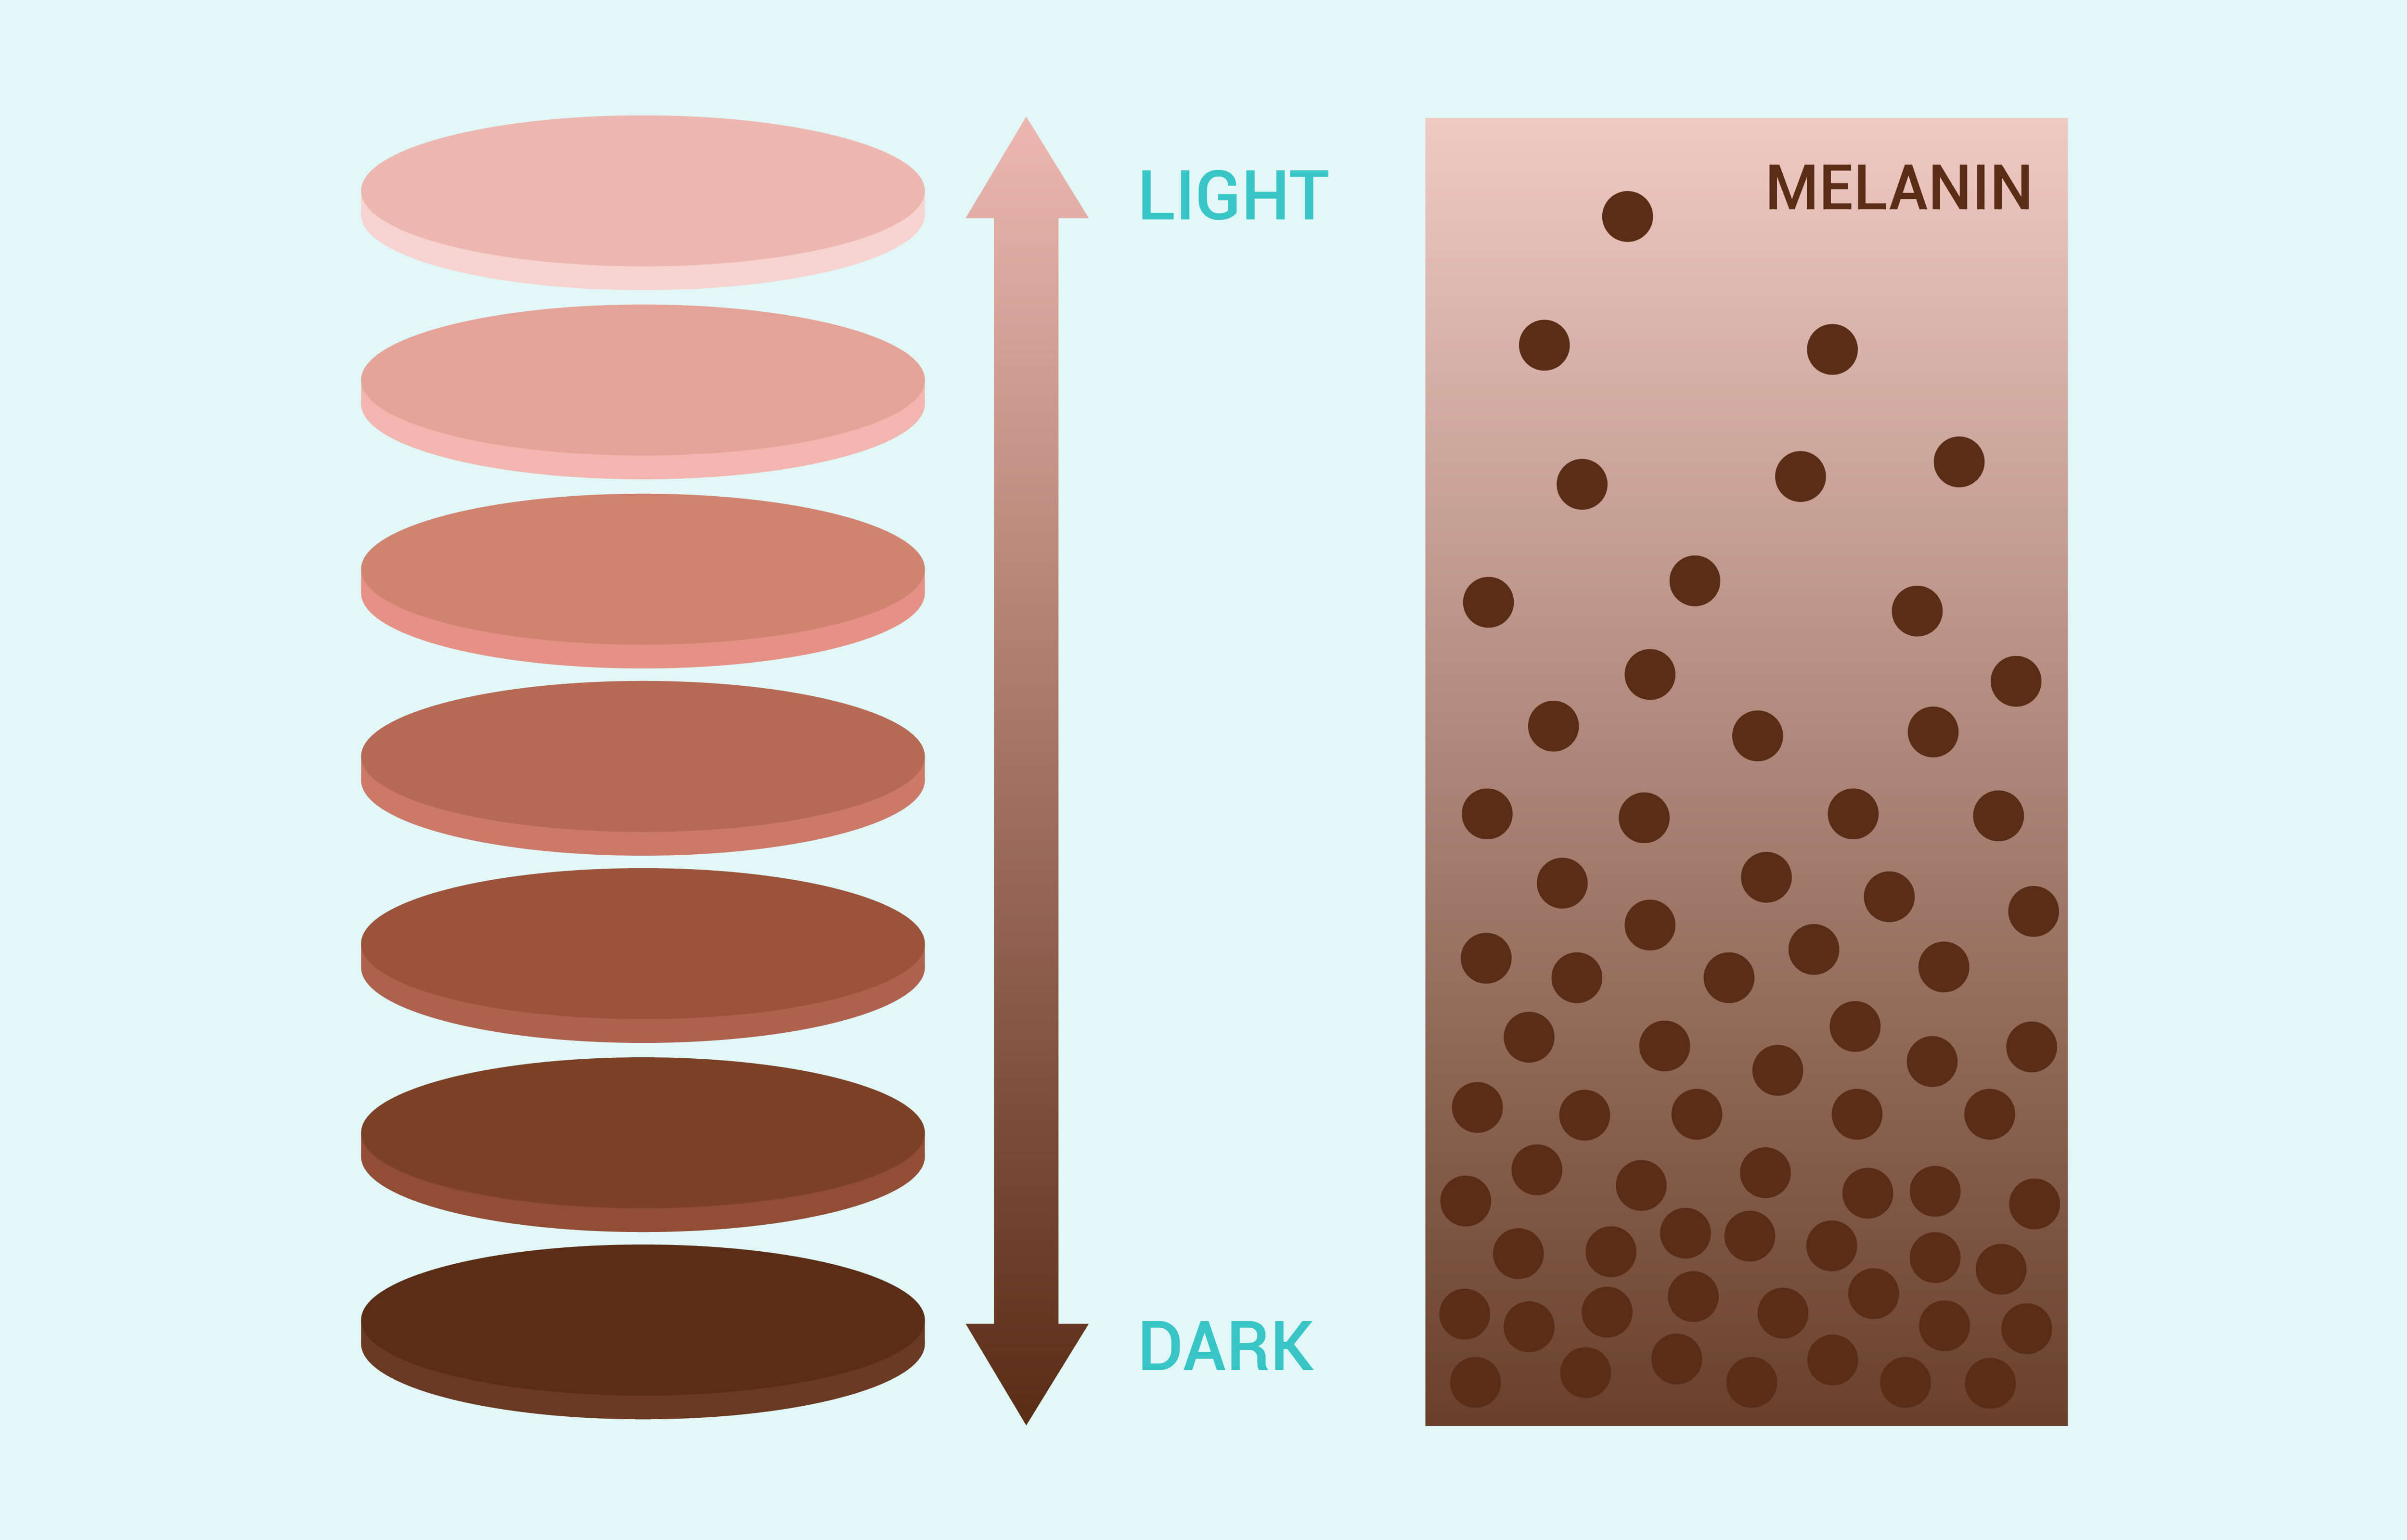 Infographic on melanin and skin tone